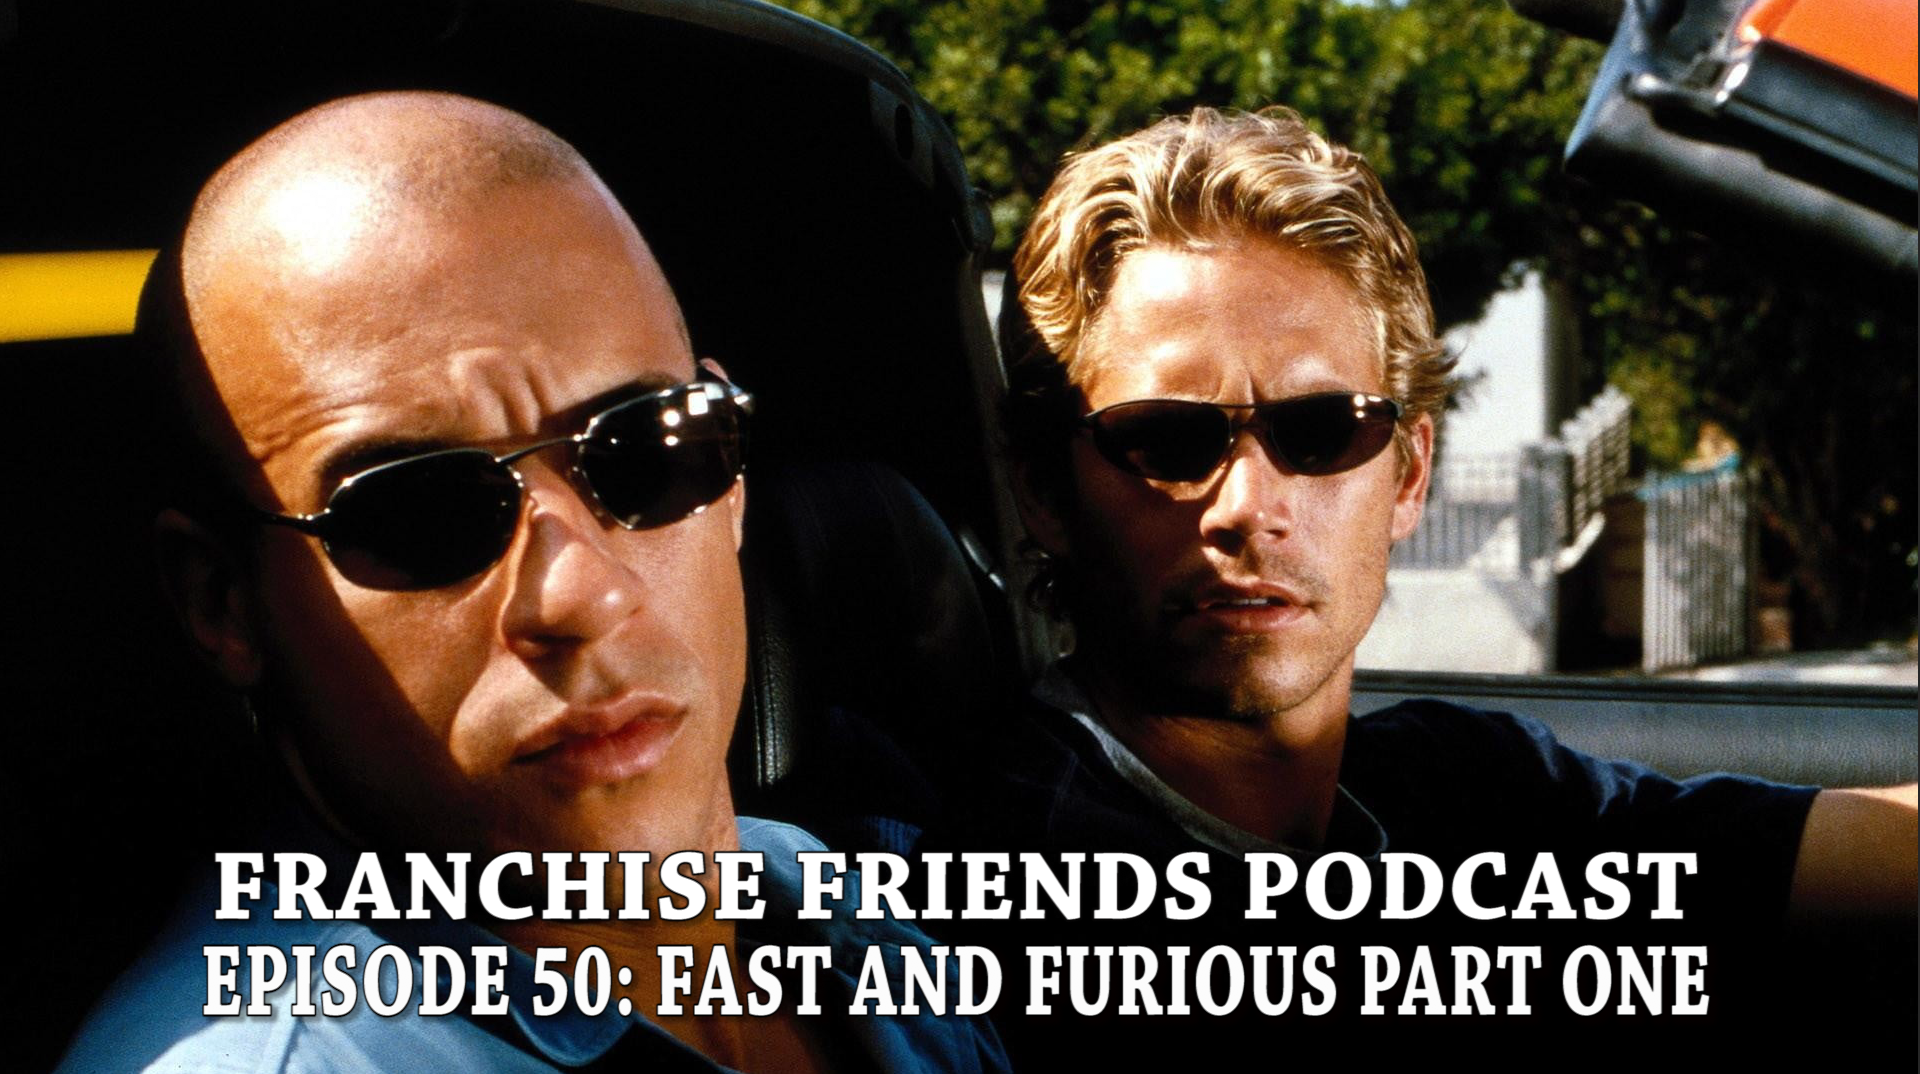 FAST AND FURIOUS FRANCHISE FRIENDS